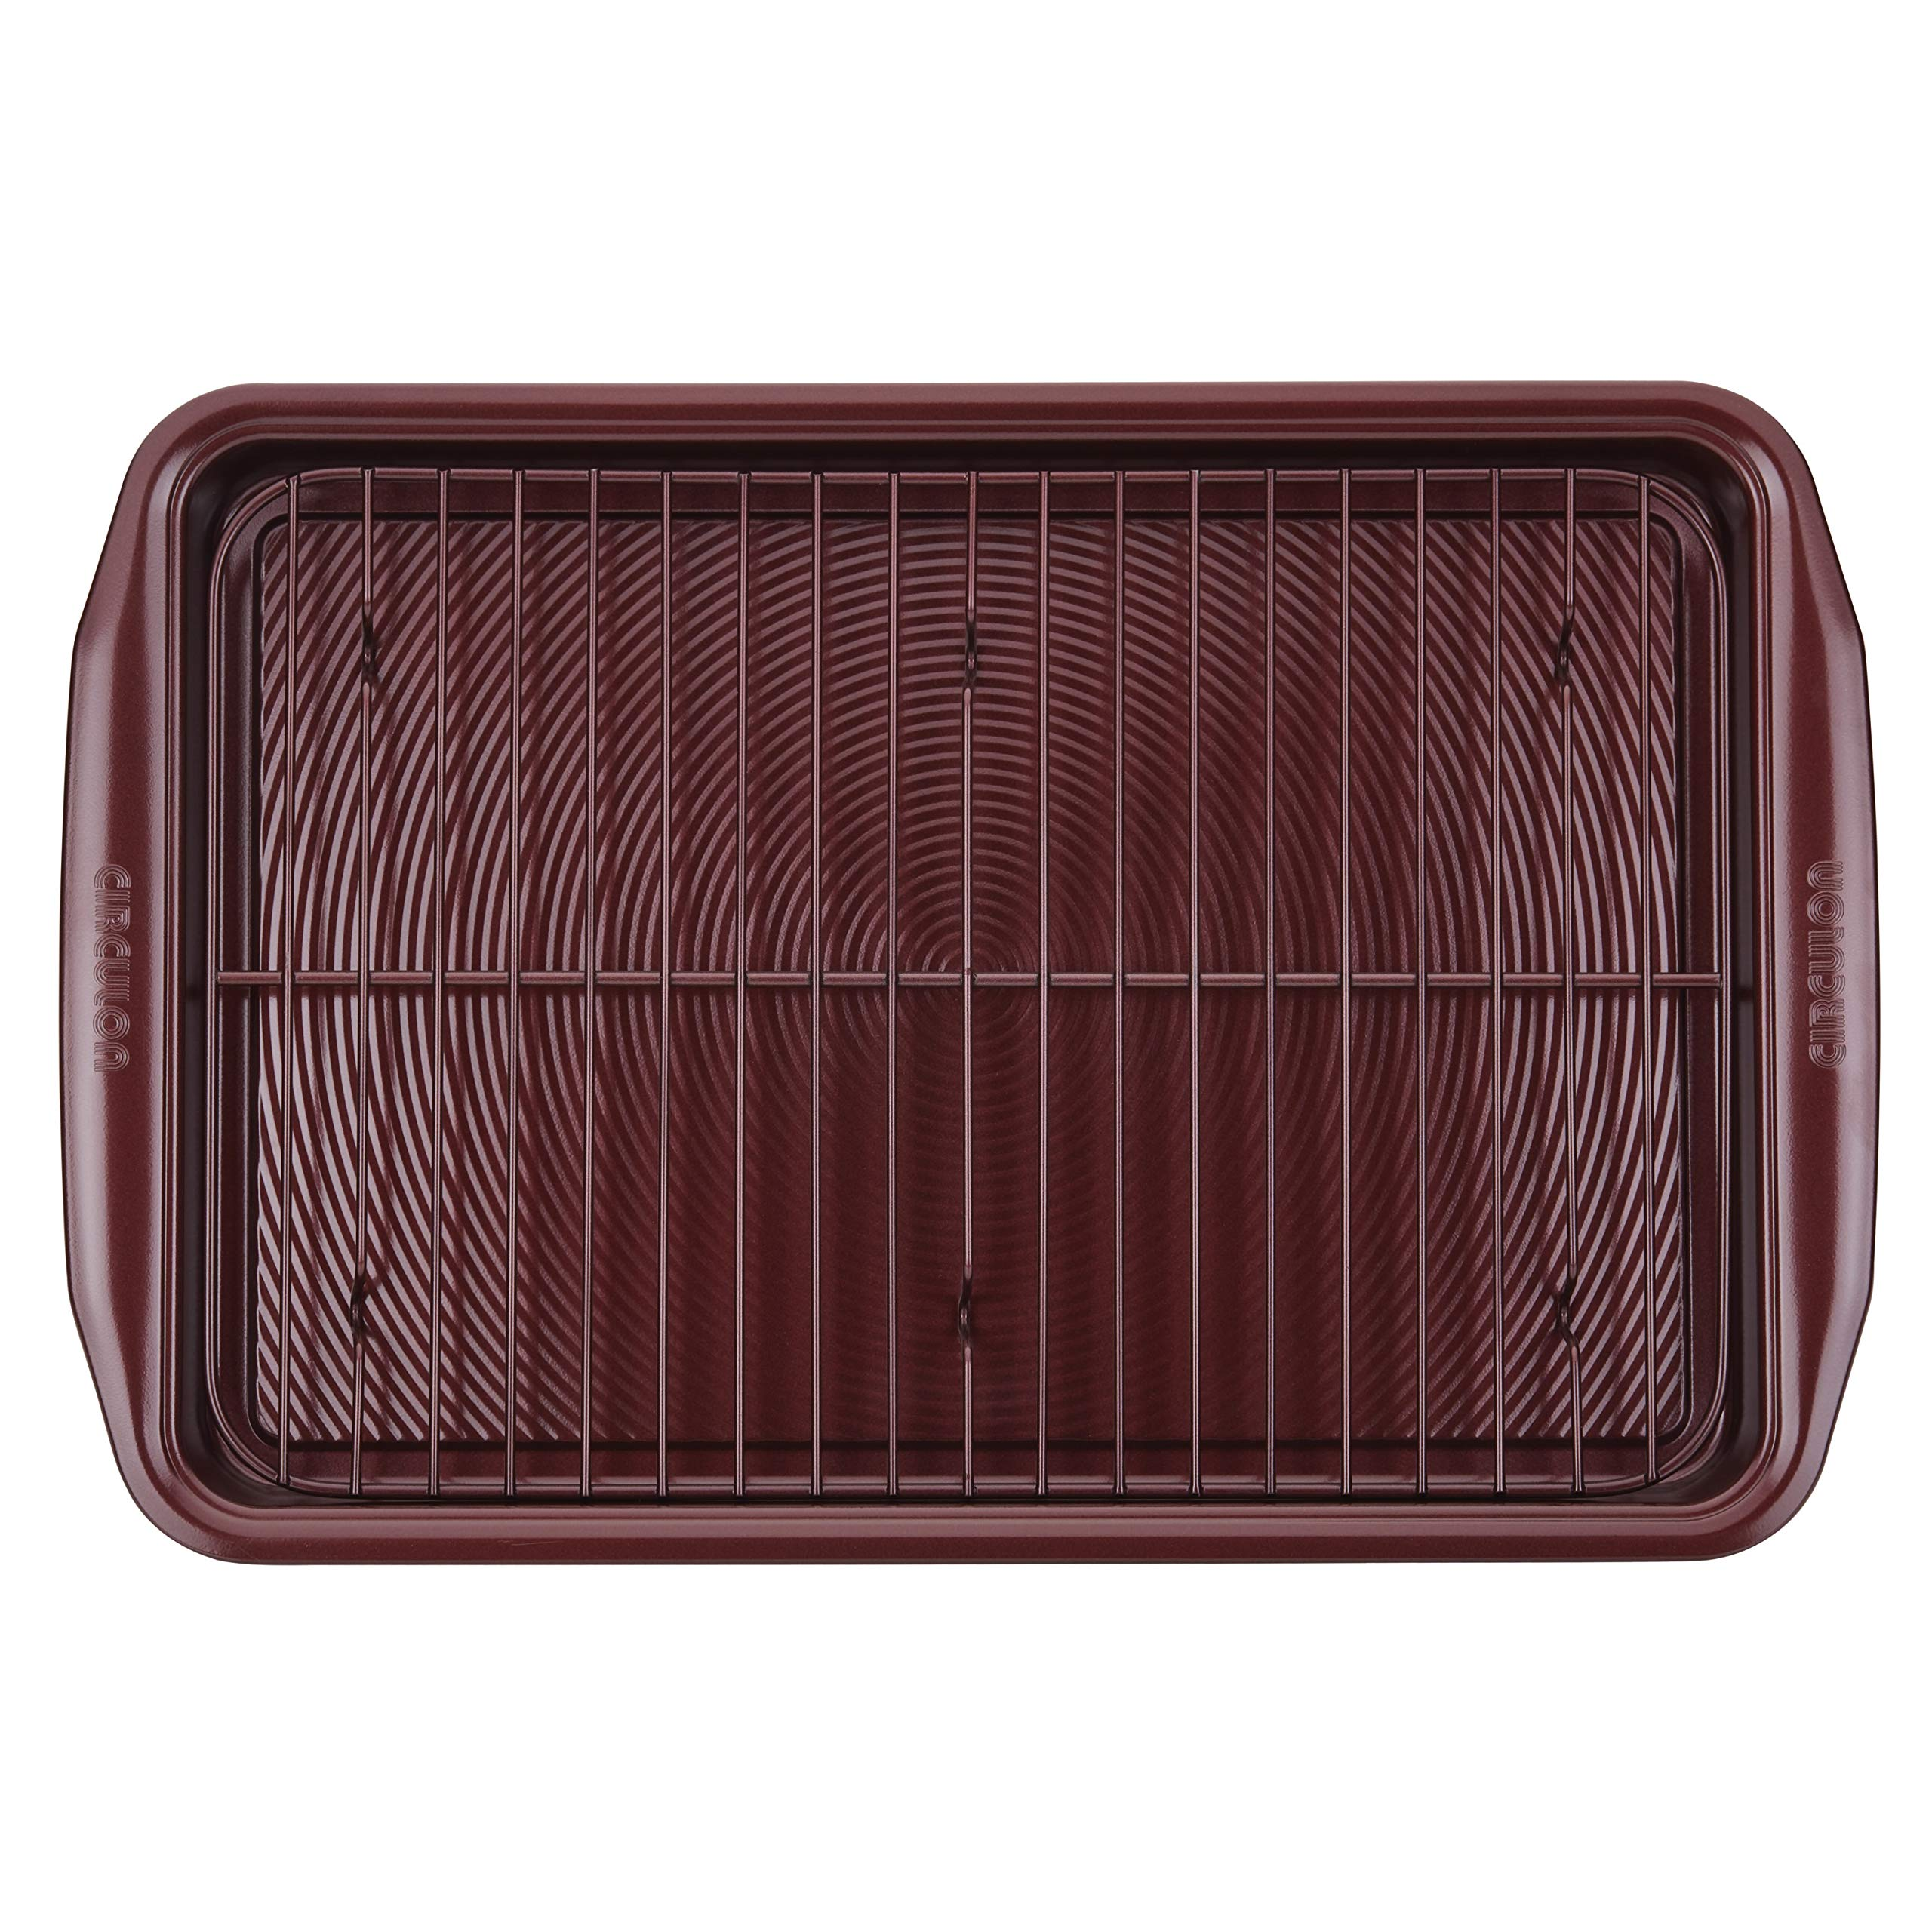 Circulon 47740 10-Piece Steel Bakeware Set, Merlot by Circulon (Image #5)